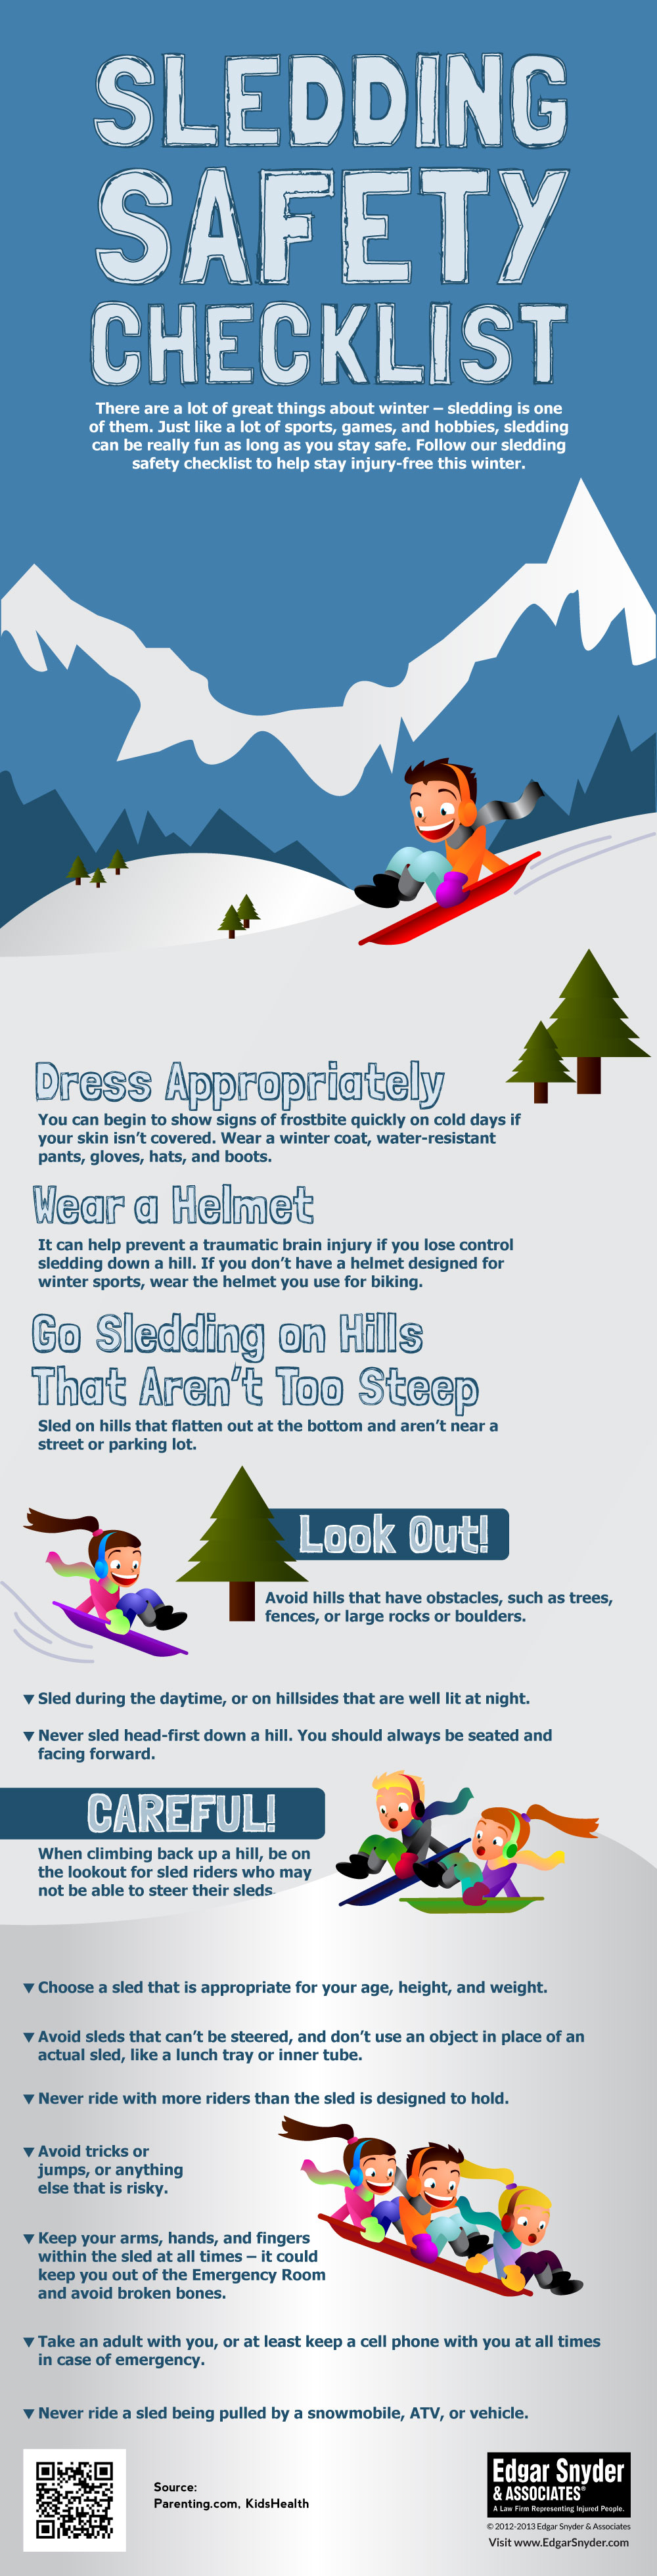 Sledding Safety Checklist - Infographic